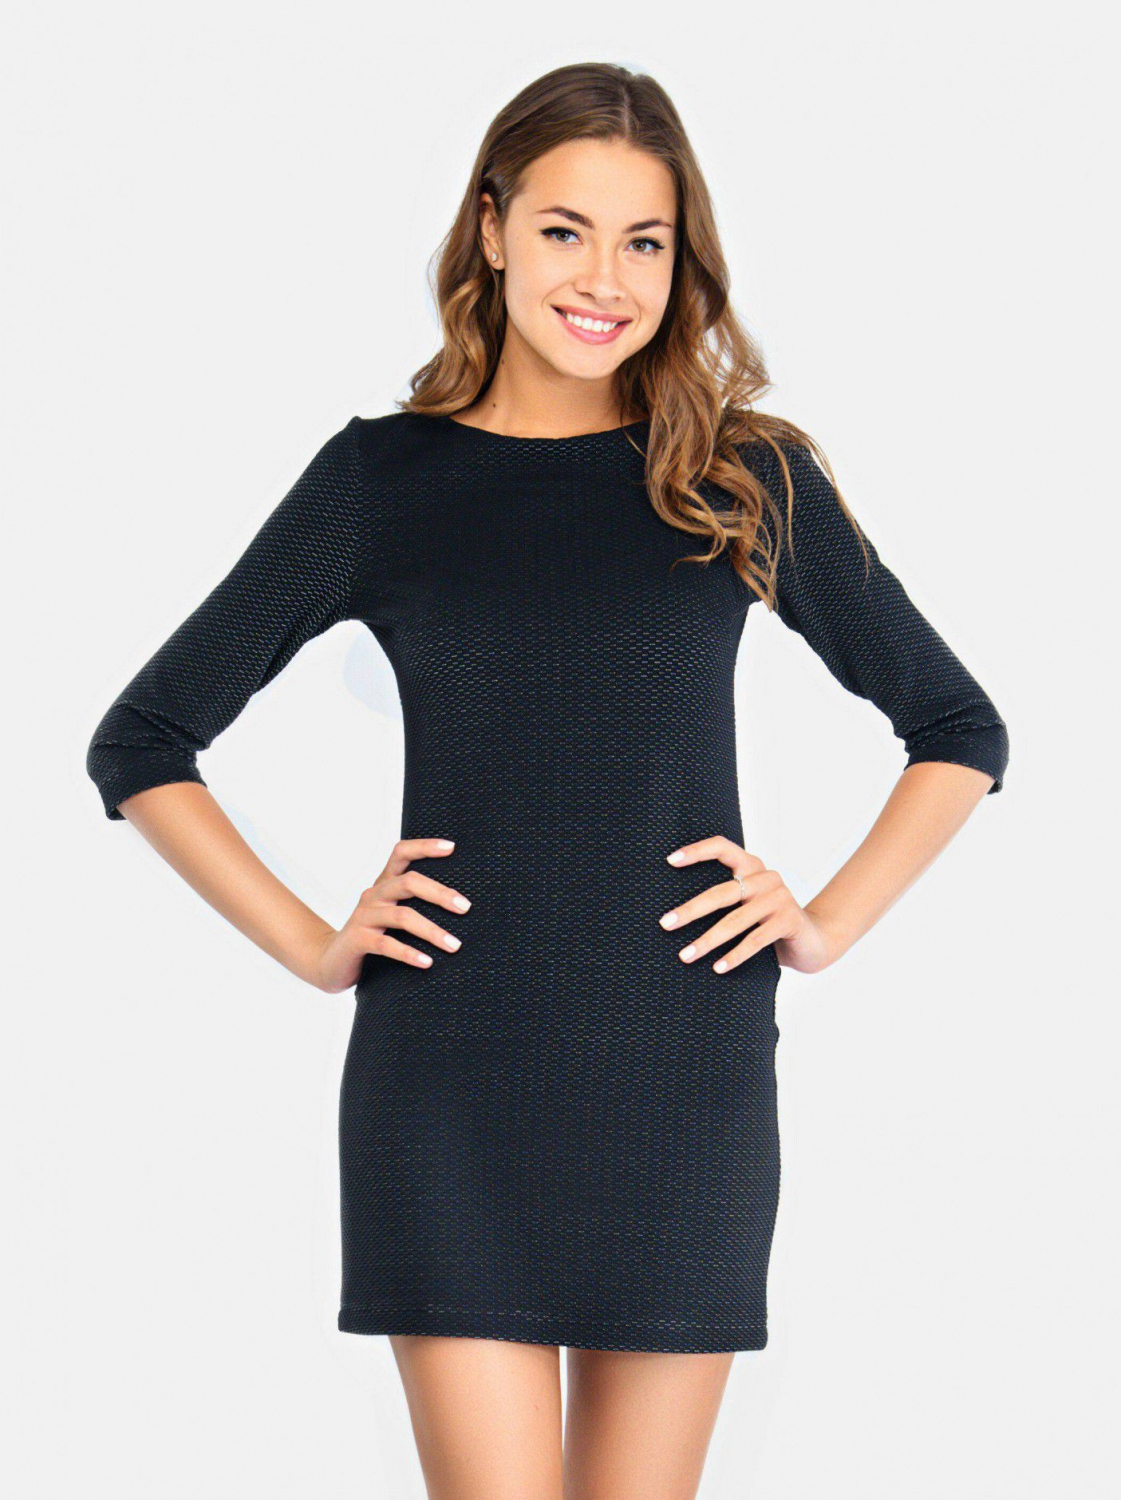 Tunic CELG LTH black